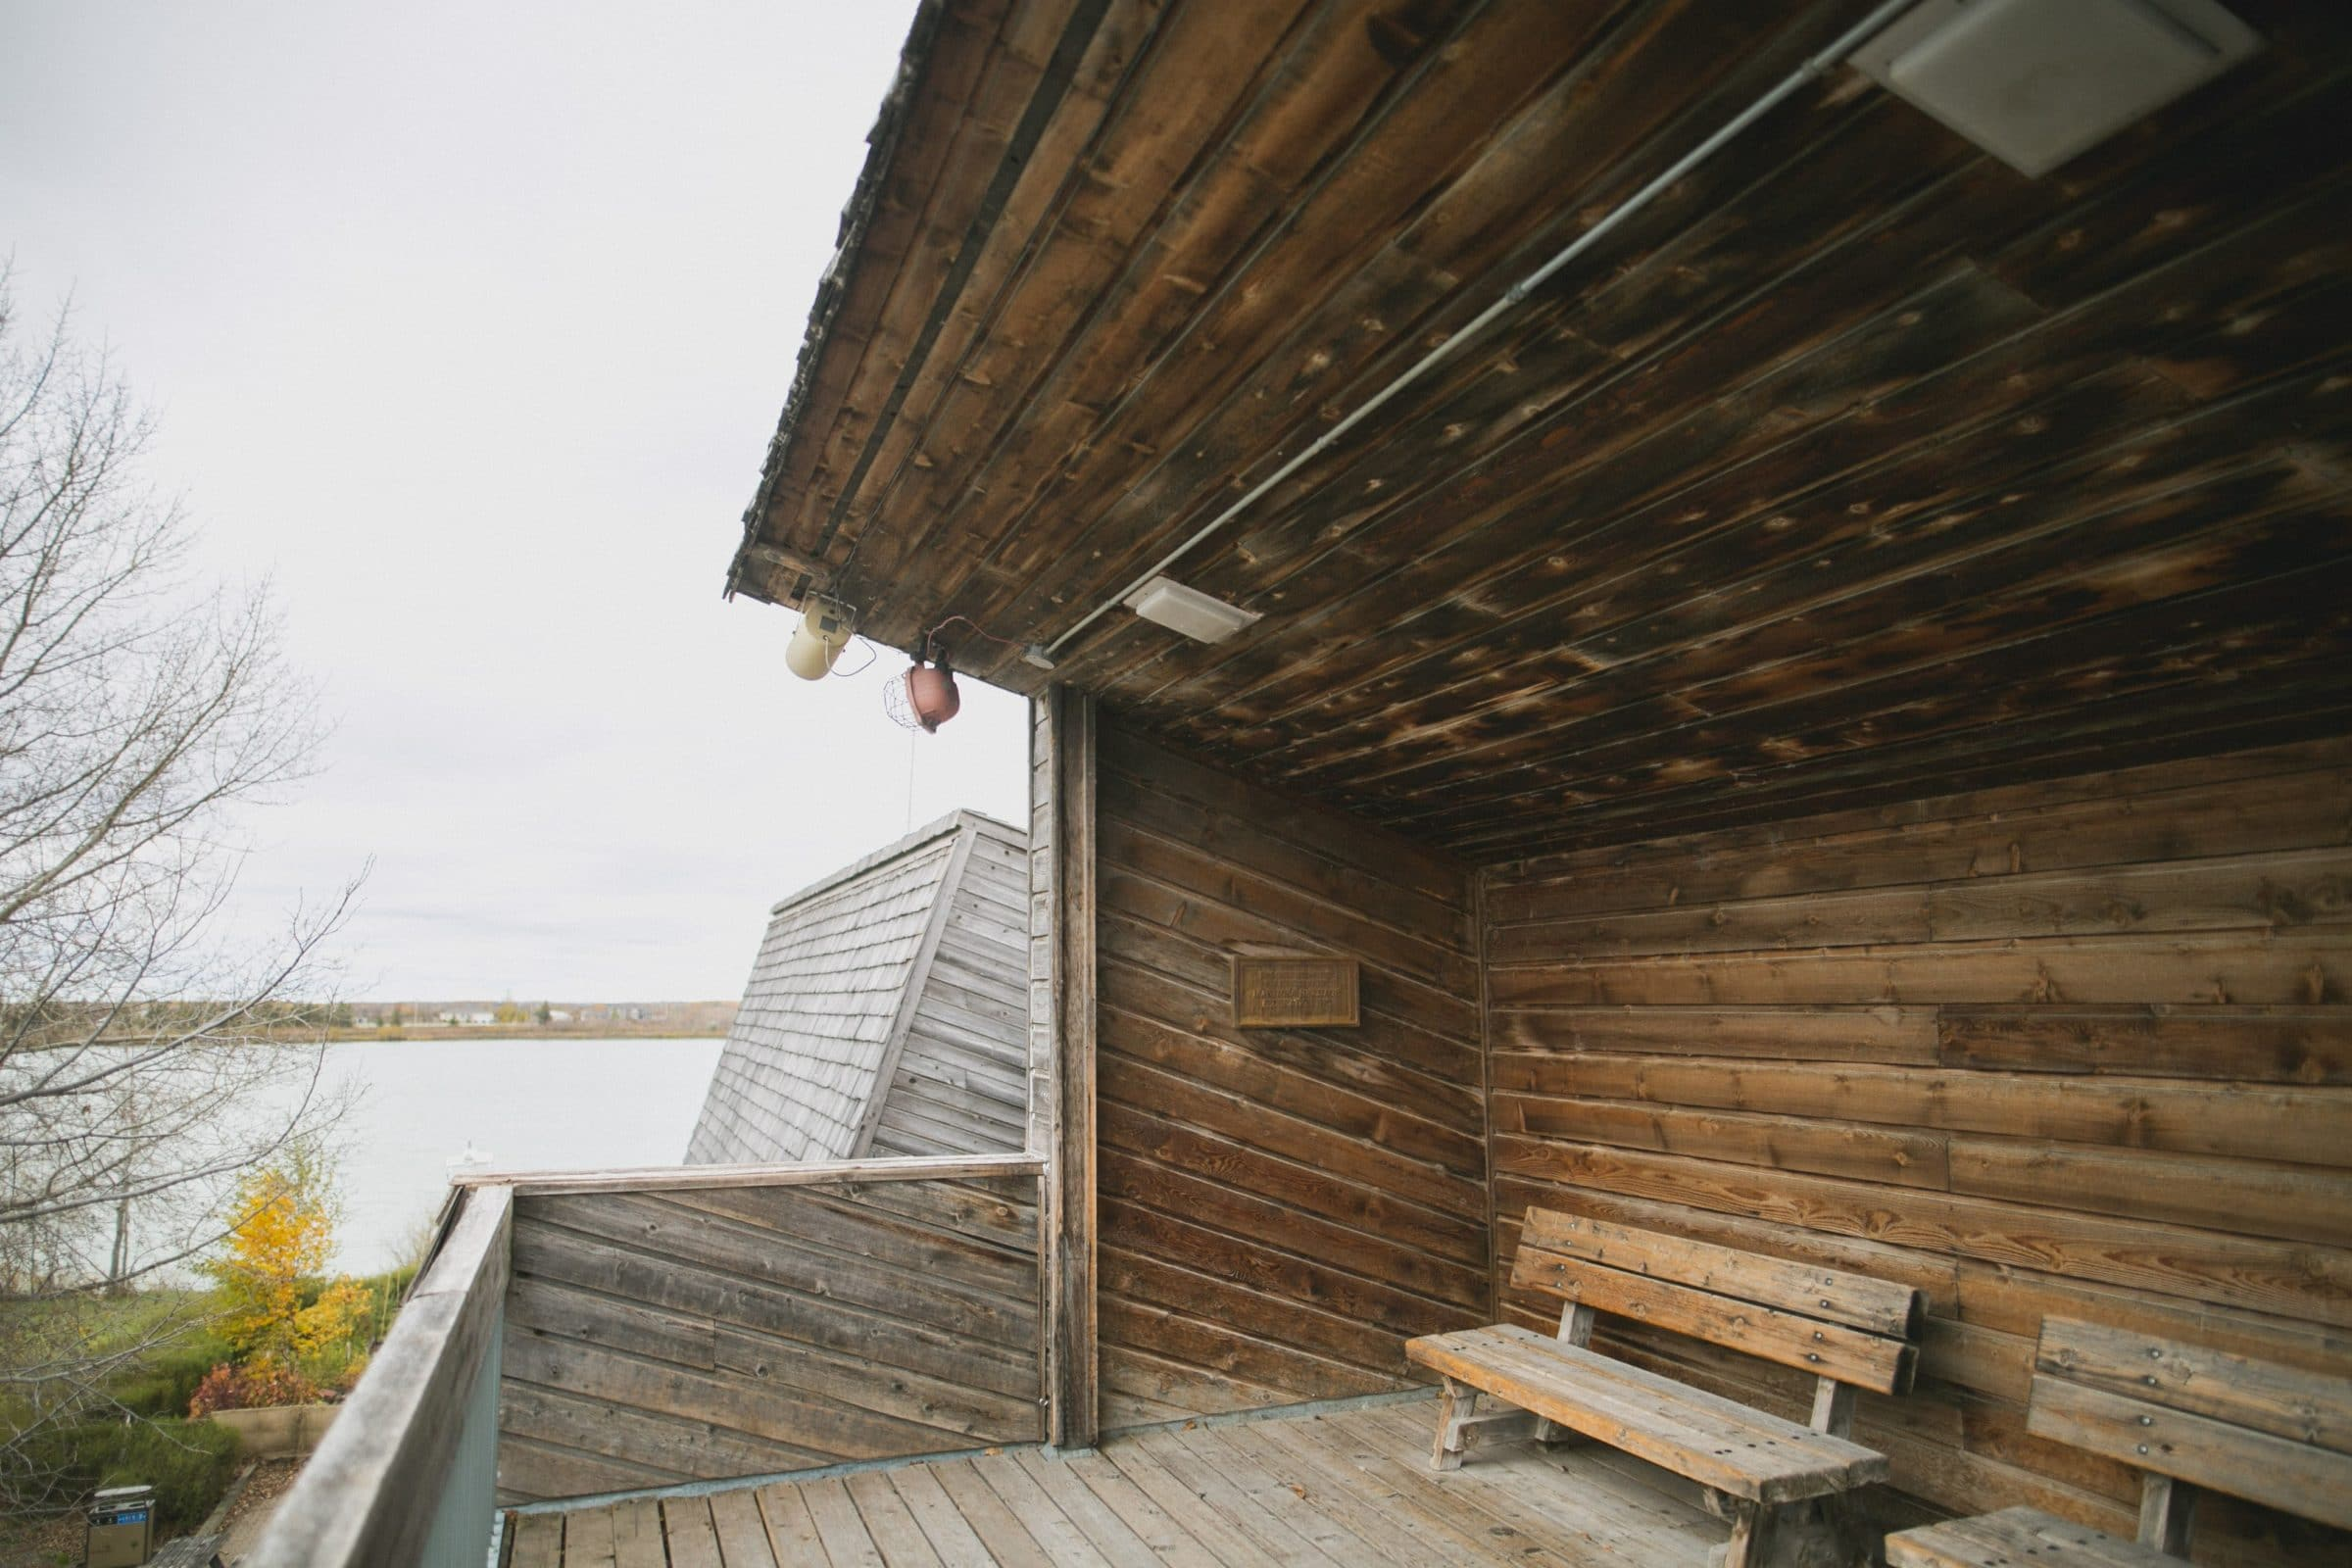 Top deck of Interpretive Centre